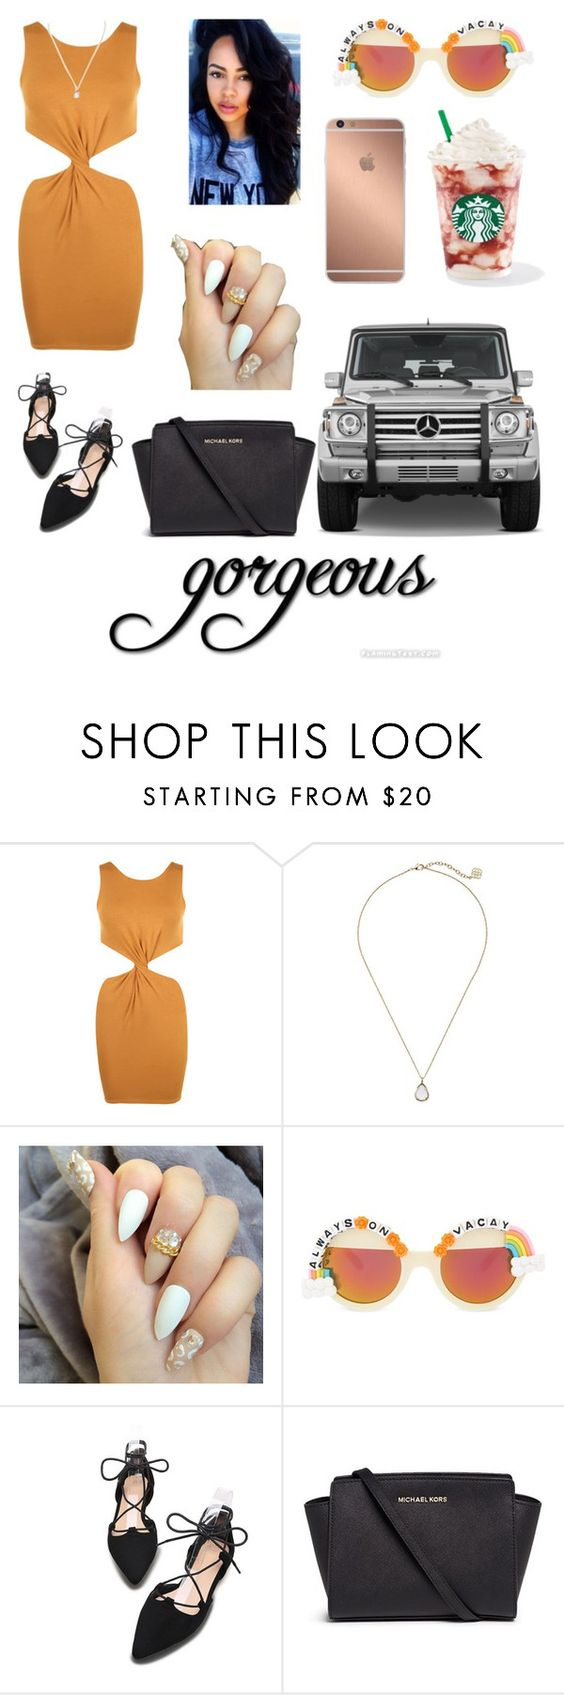 """""""gorgeous ."""" by qveenkyndall16 ❤ liked on Polyvore featuring WearAll, Mura, Kendra Scott, Rad+Refined, Mercedes-Benz and Michael Kors"""